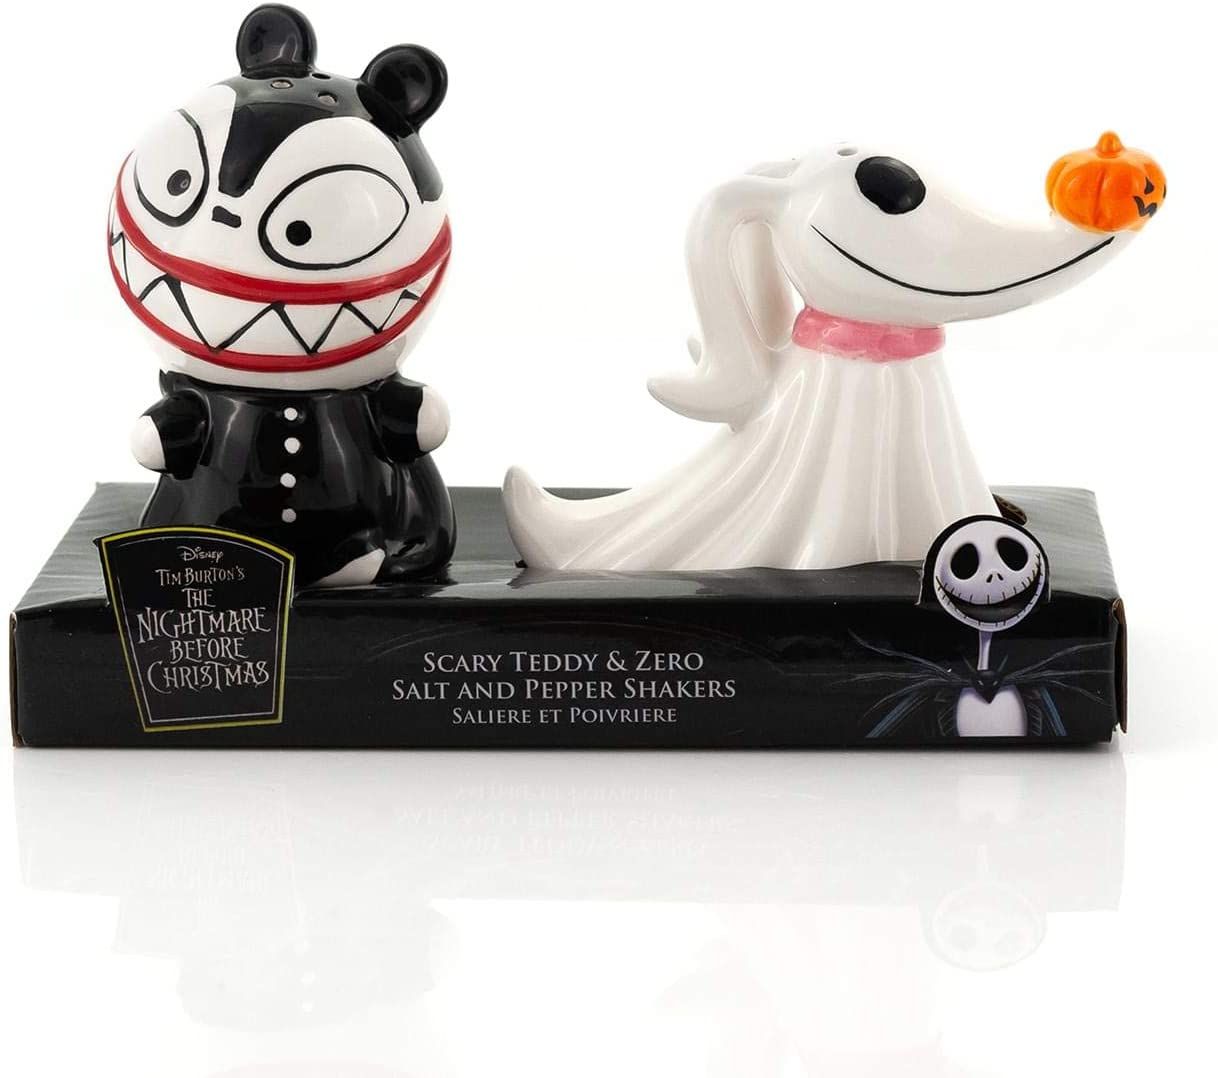 Nightmare Before Christmas Scary Teddy & Zero Ceramic Salt & Pepper Shakers - Fun Collectible Kitchen Accessory Set Featuring Tim Burton's Creepy Animated Movie Characters - Licensed 2